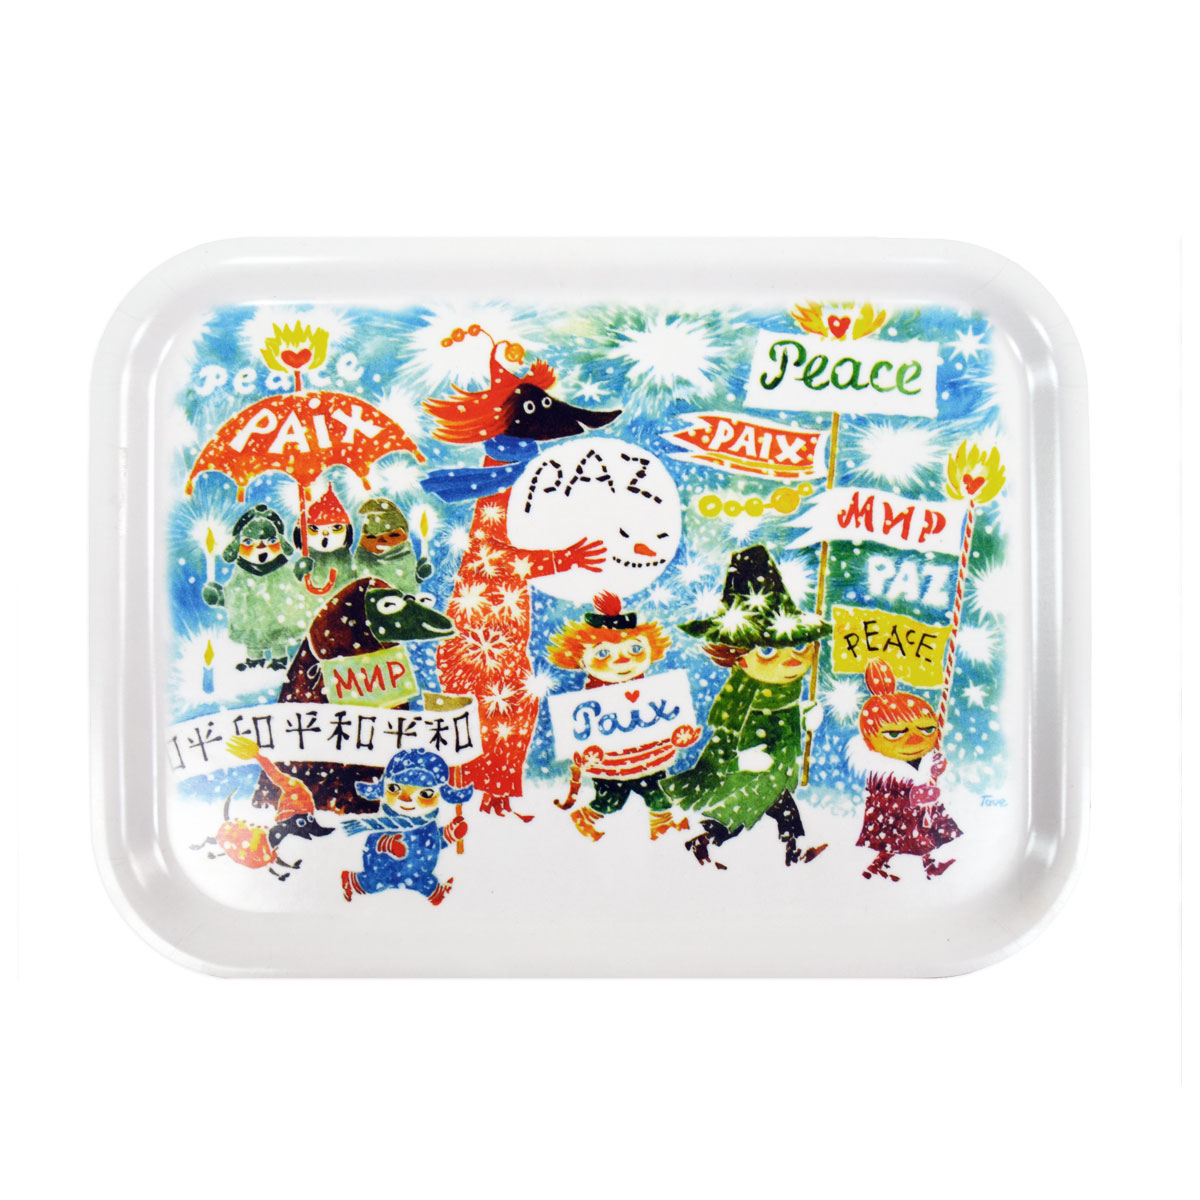 Moomin Peace Unicef Small Tray - Great Gifts under $50